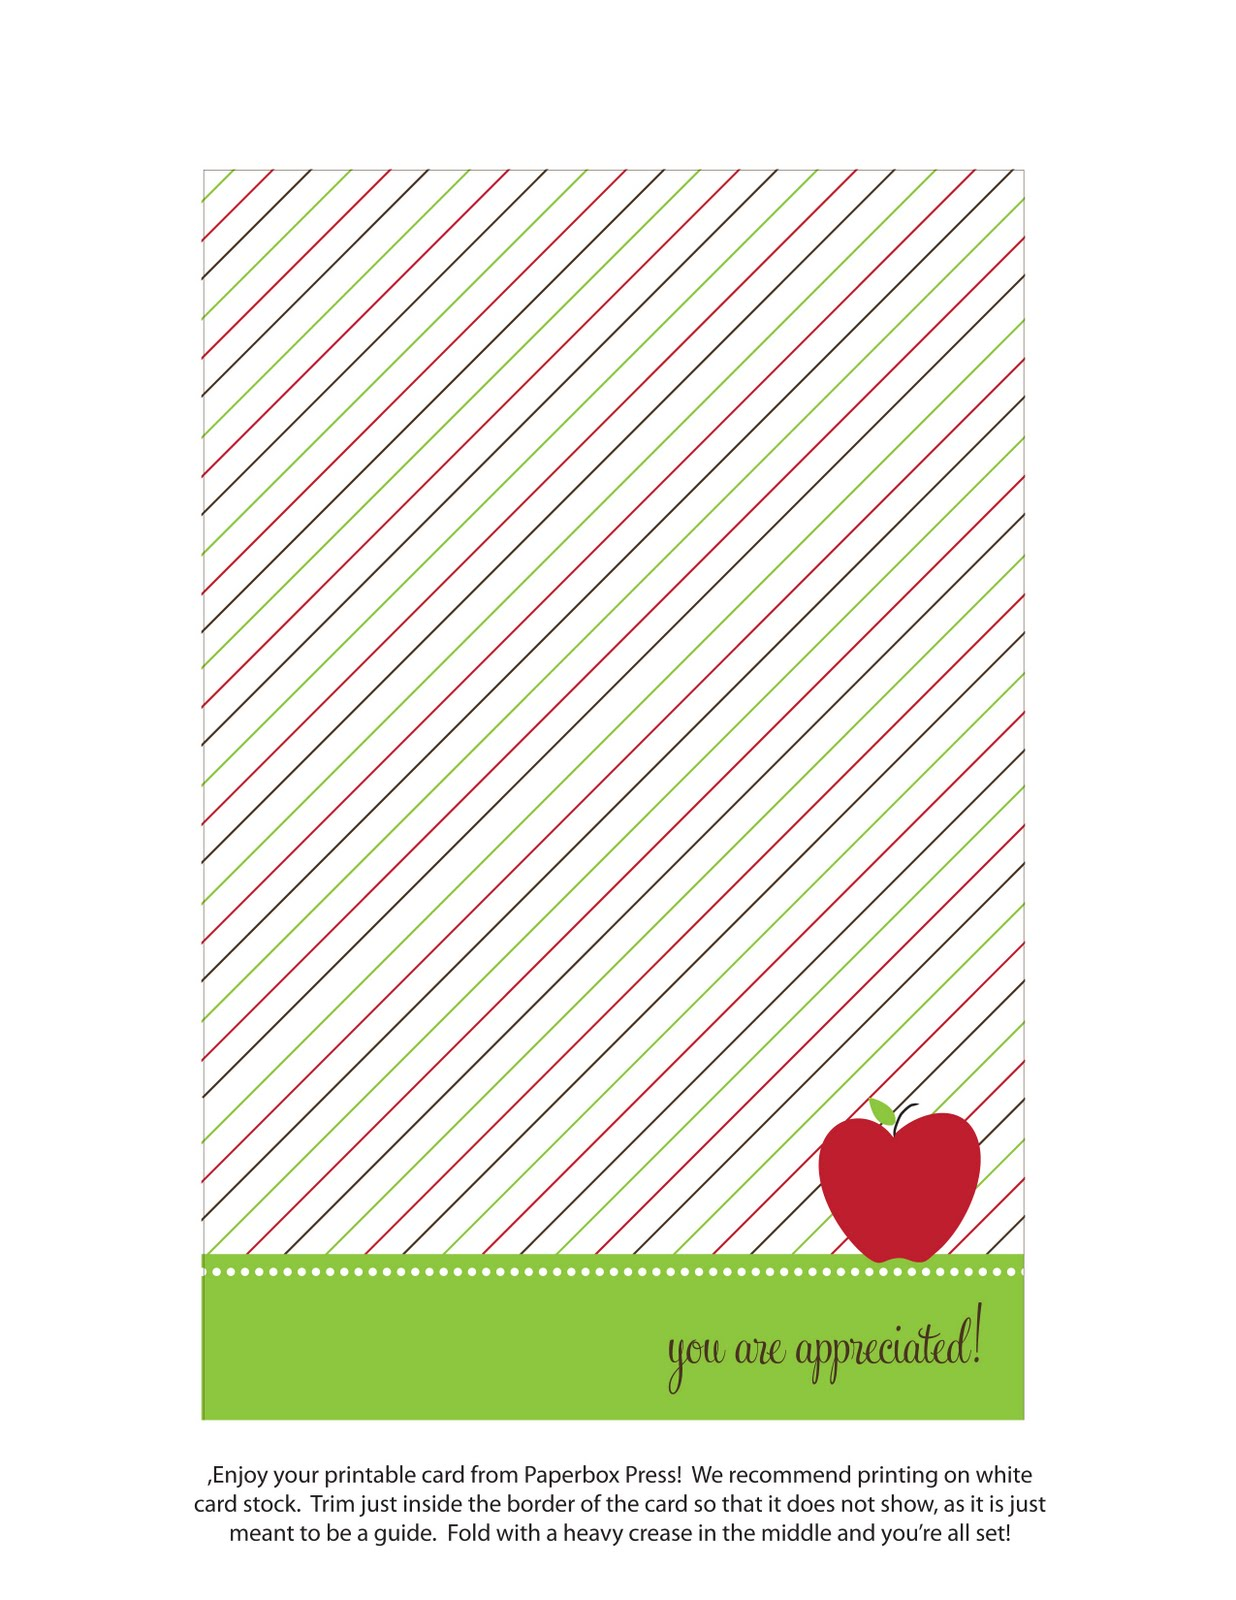 It's just an image of Teacher Appreciation Printable Card pertaining to thanking card